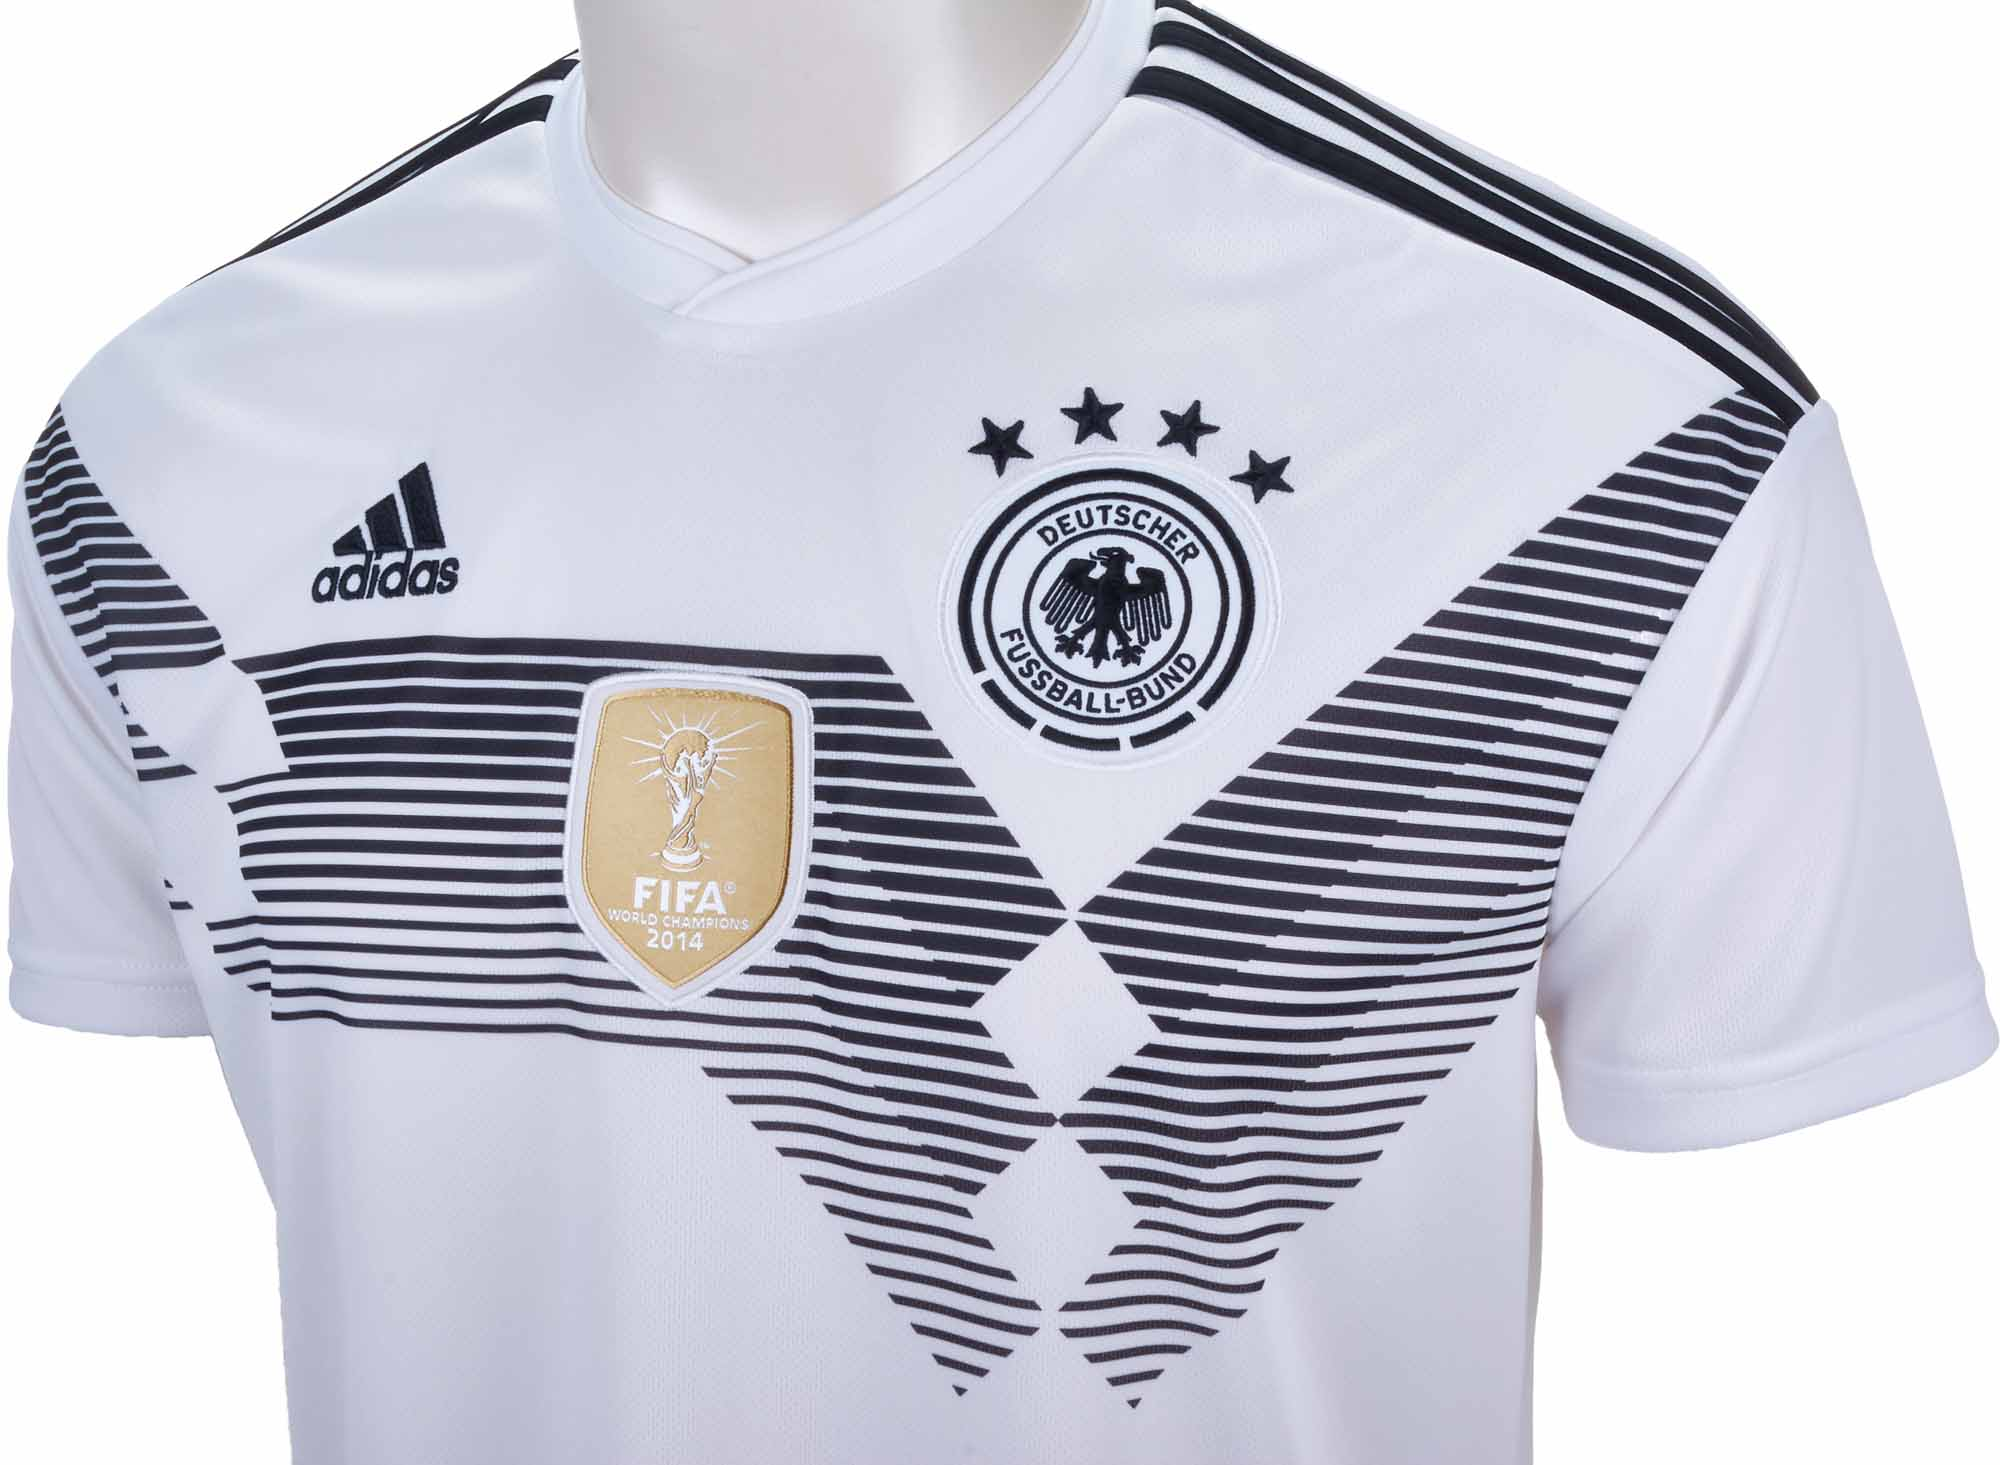 Adidas germany home jersey 2018 19 for Germany mercedes benz soccer jersey